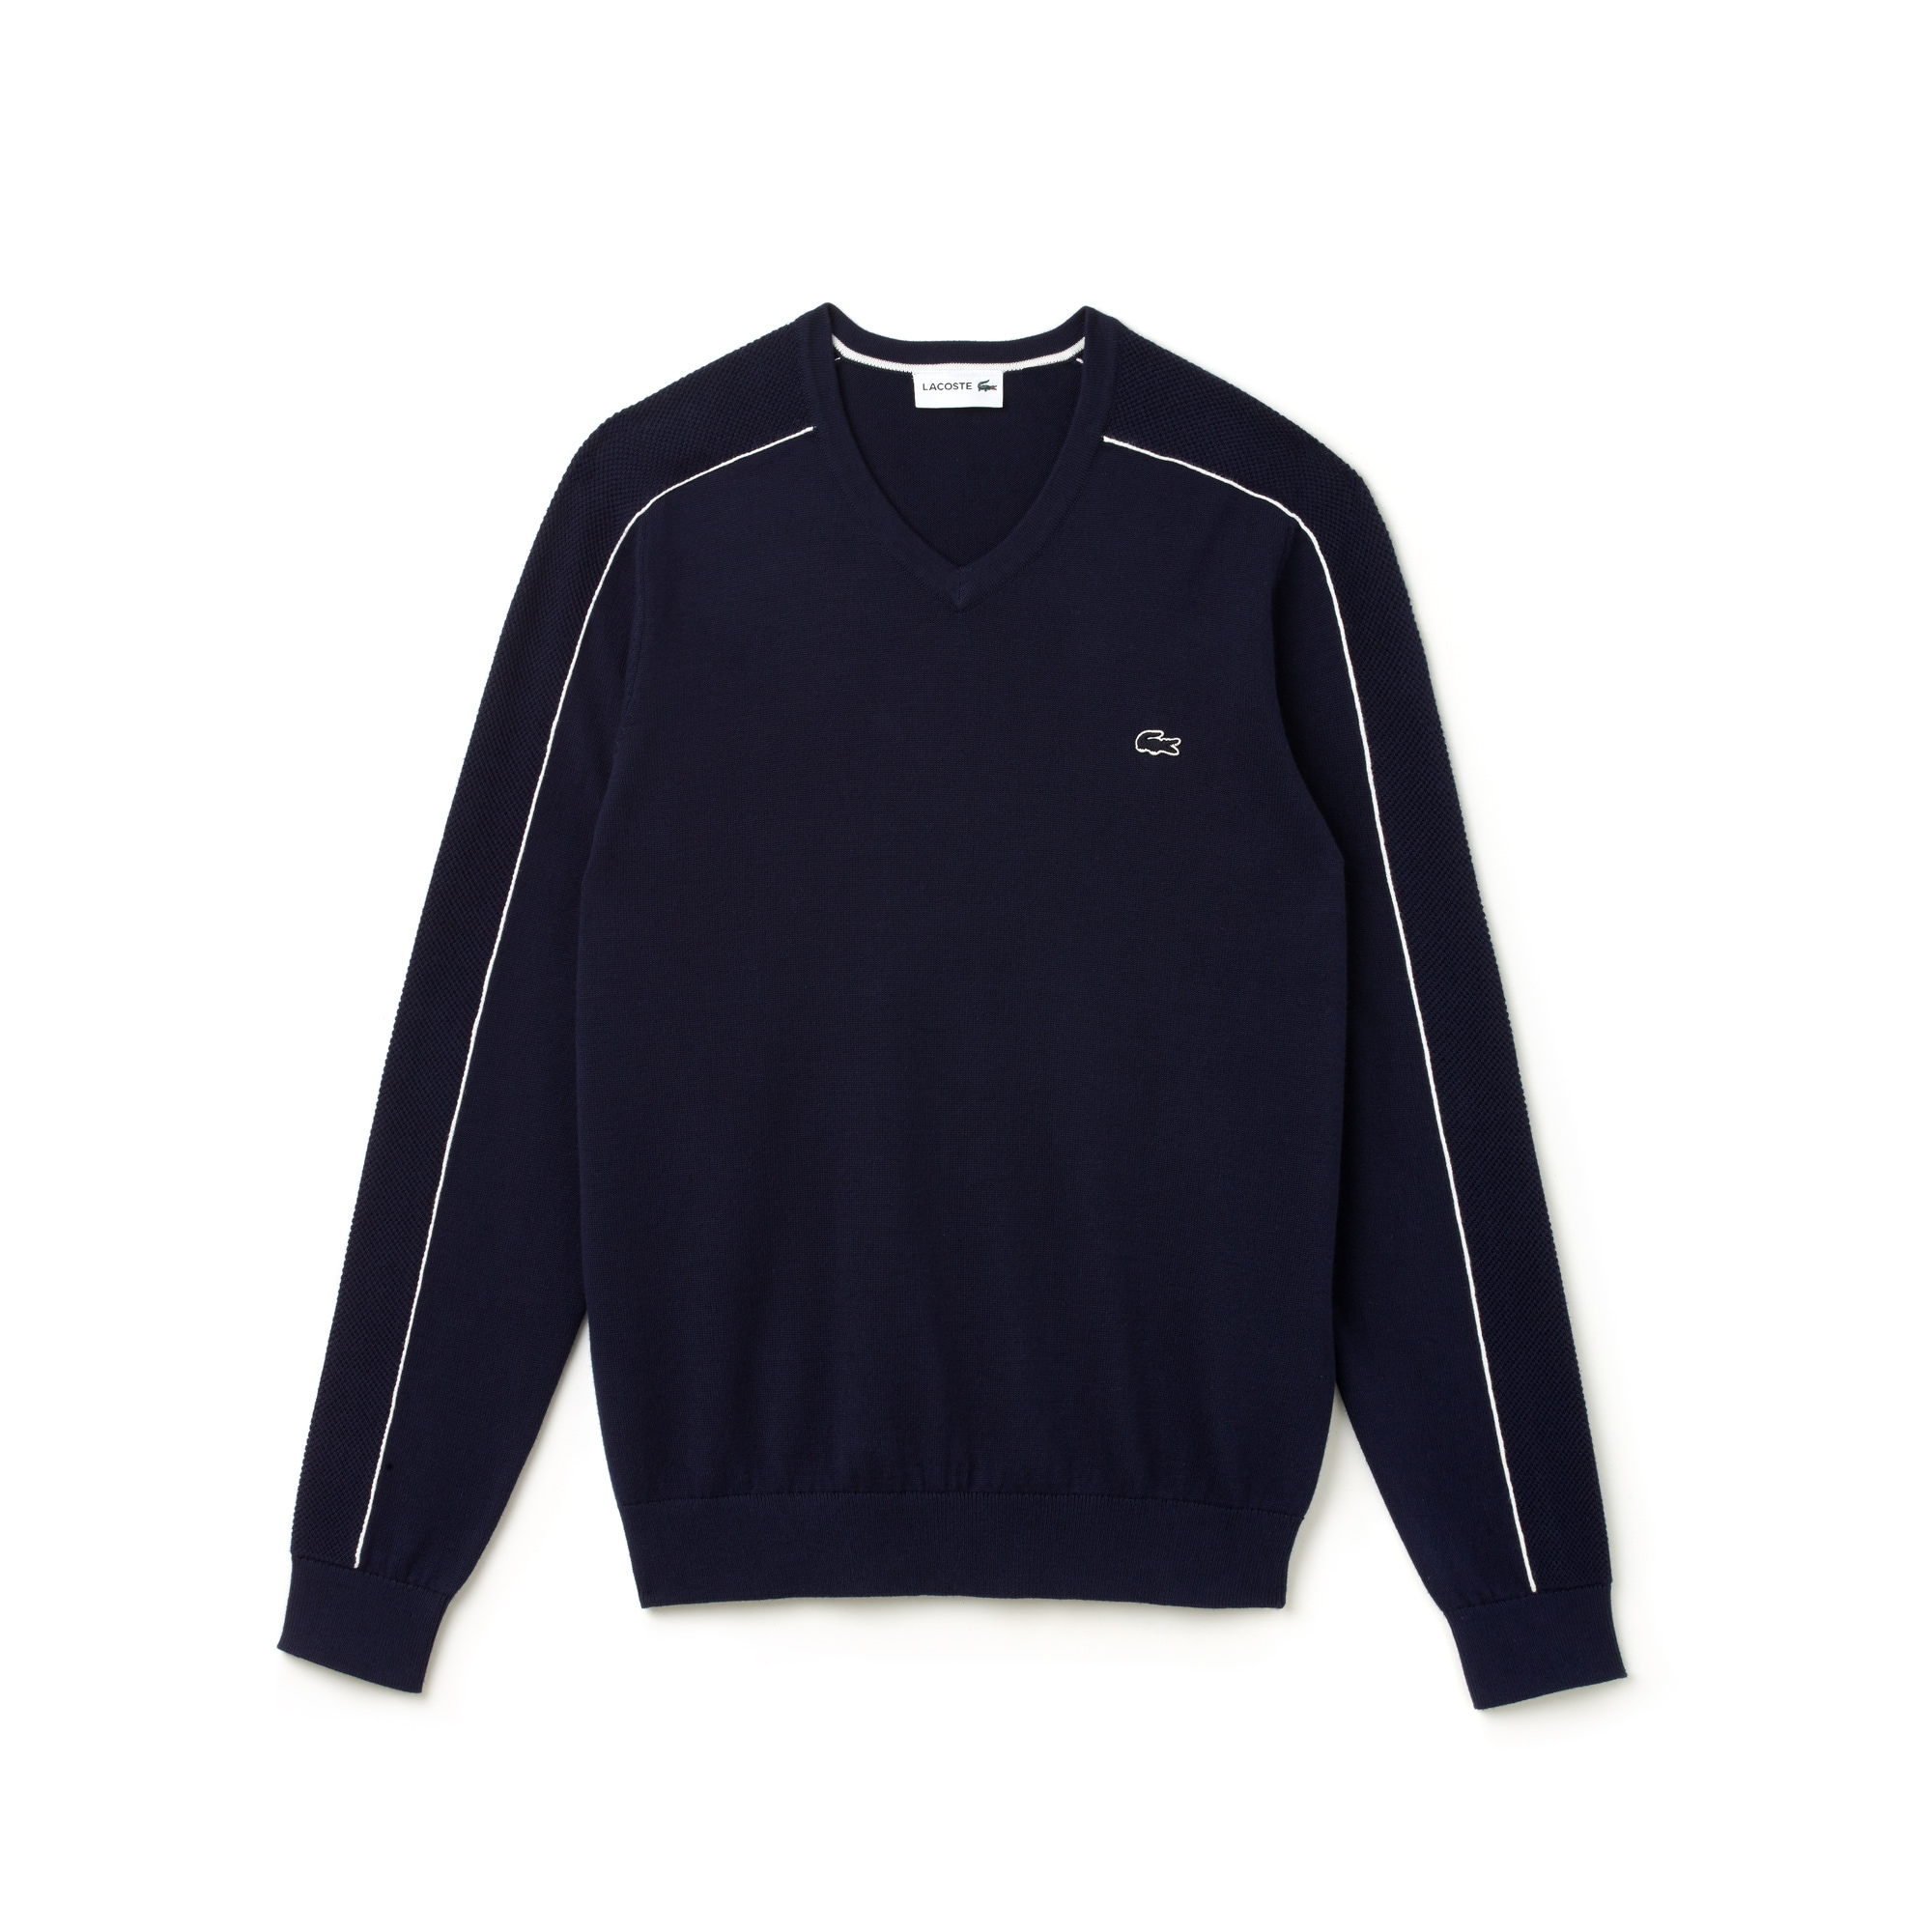 Men's V-neck Piped Jersey And Cotton Piqué Sweater